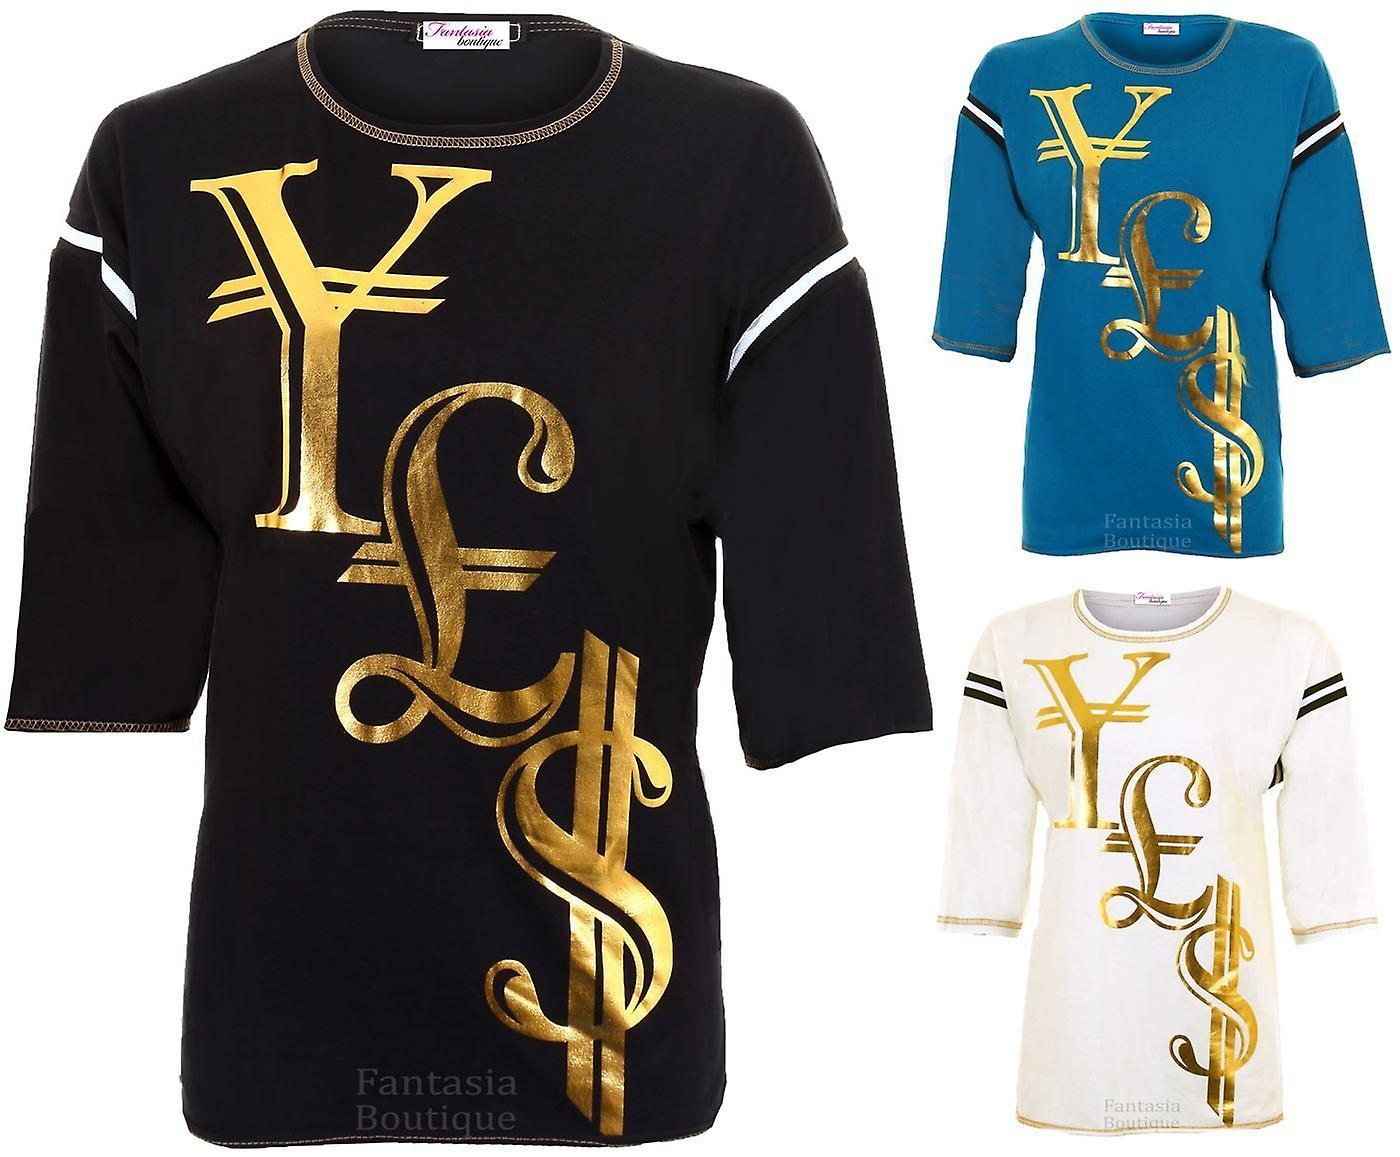 Ladies 3/4 Sleeve Gold Dollar Pound Yen Print T-Shirt Baggy Women's Top